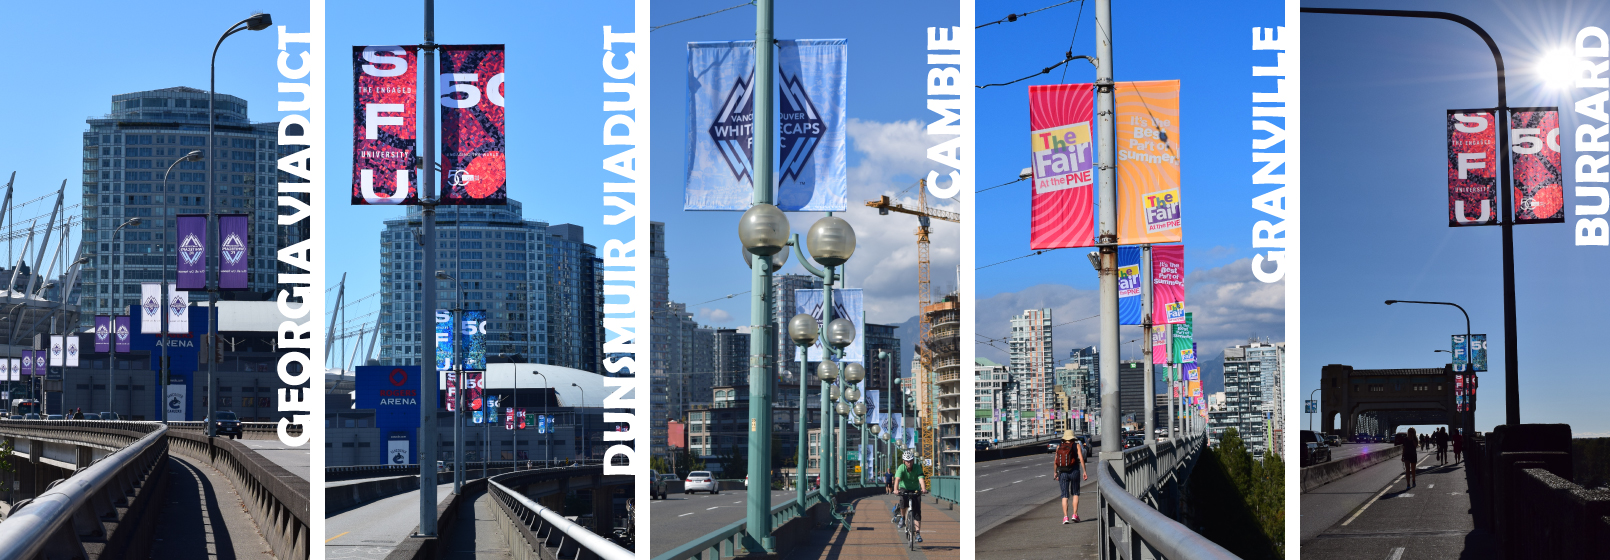 Left to right: Whitecaps Banners on the Georgia Viaduct; SFU 50th Anniversary on the Dunsmuir Viaduct; Brand New Whitecaps Banners on the Cambie Street Bridge; PNE Banners on the Granville Street Bridge; More SFU Banners on the Burrard Street Bridge.